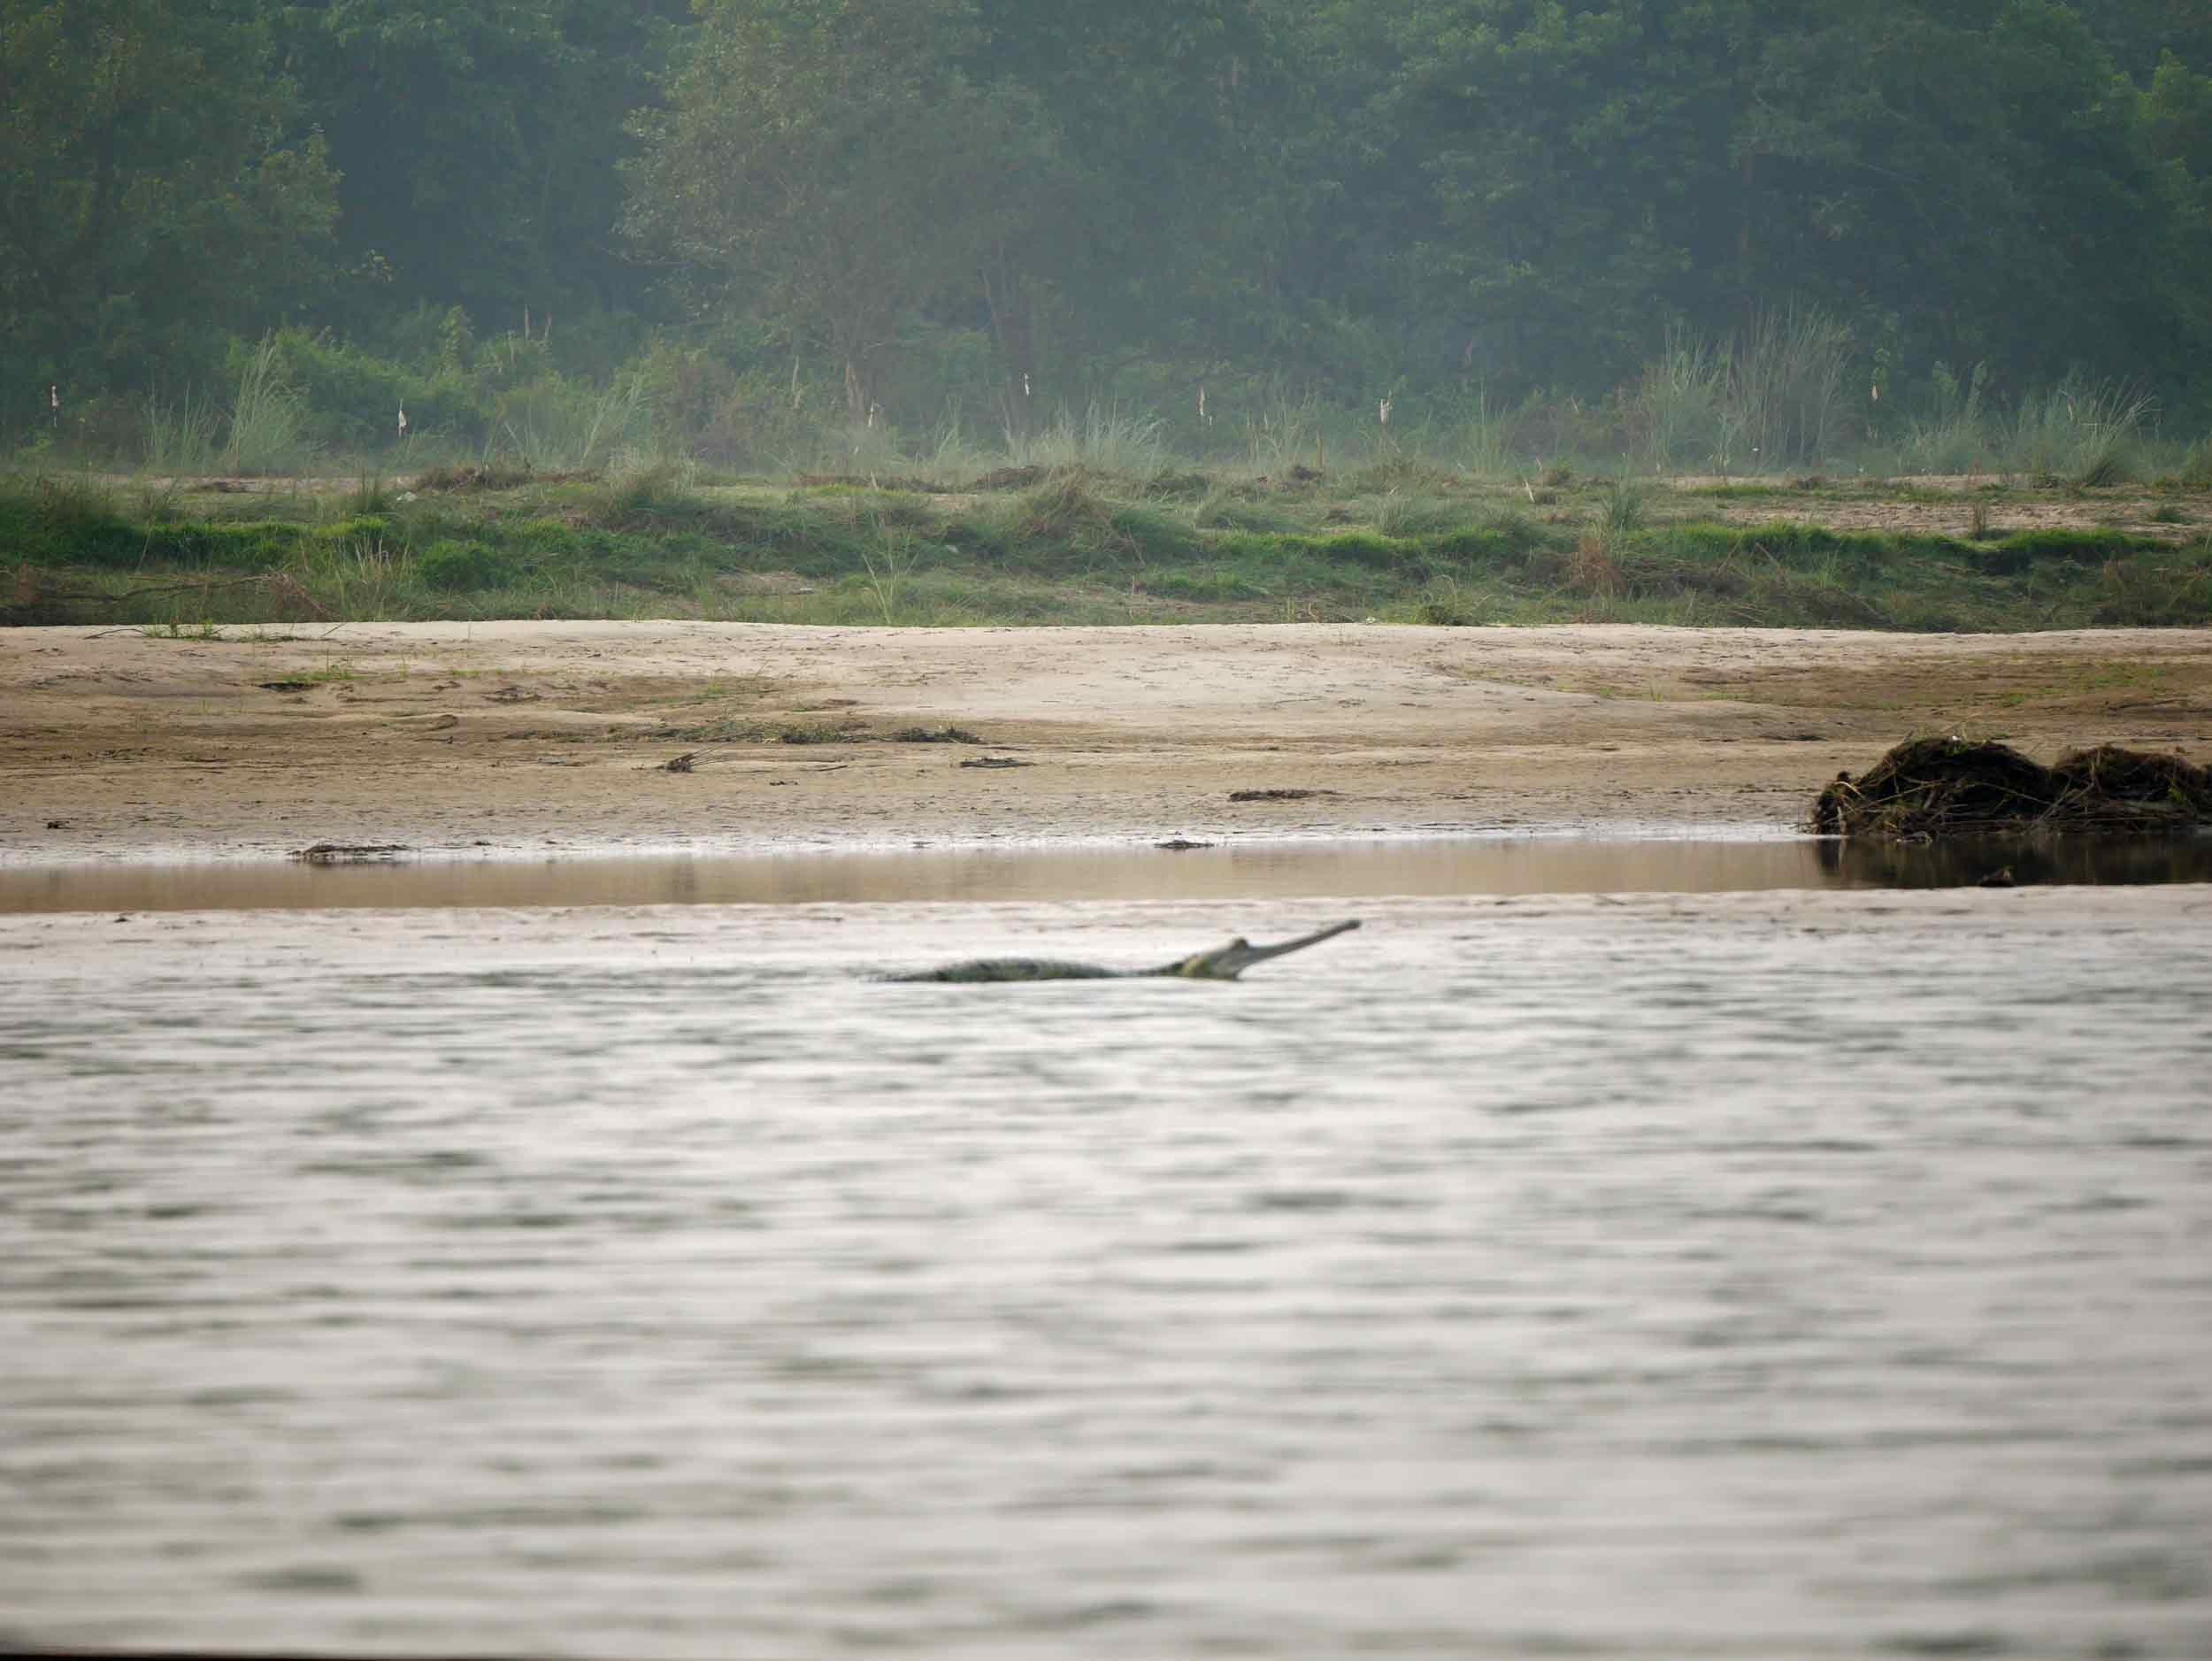 Our knee buckling dug-out canoe journey brought us in close proximity to these river crocodiles (Oct 15).